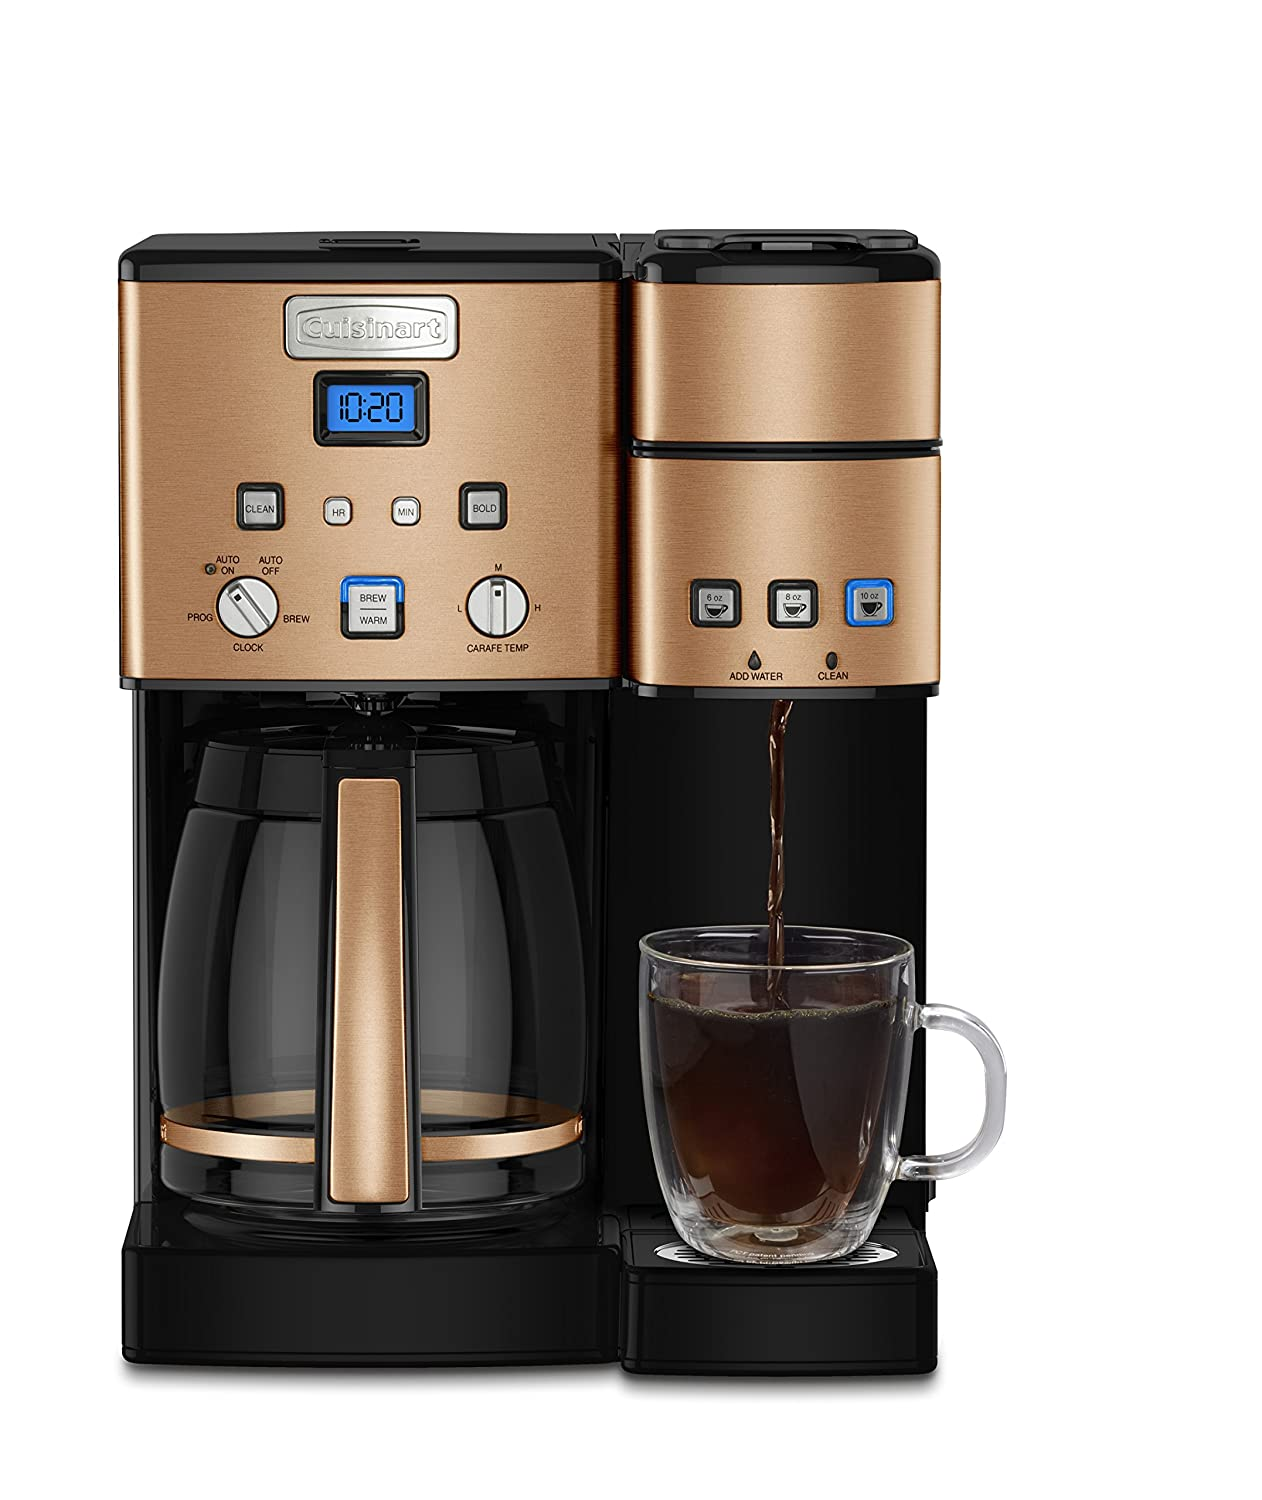 3ce27d9d86f Amazon.com  Cuisinart SS-15CP 12 Cup Coffee Maker And Single-Serve Brewer  Copper  Kitchen   Dining